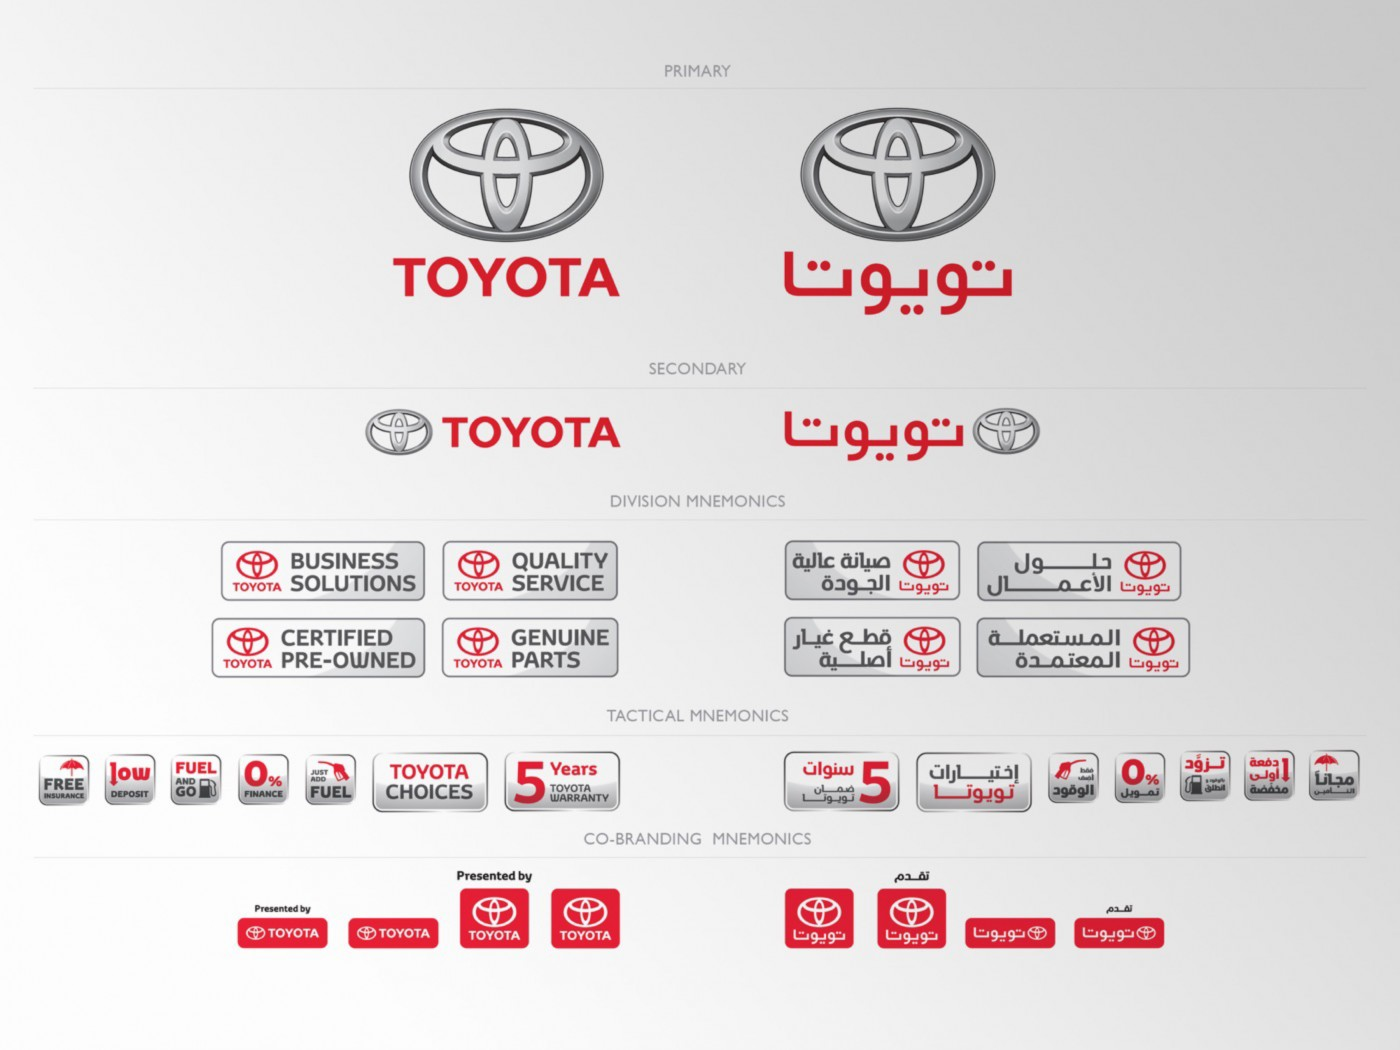 Toyota relationship marketing